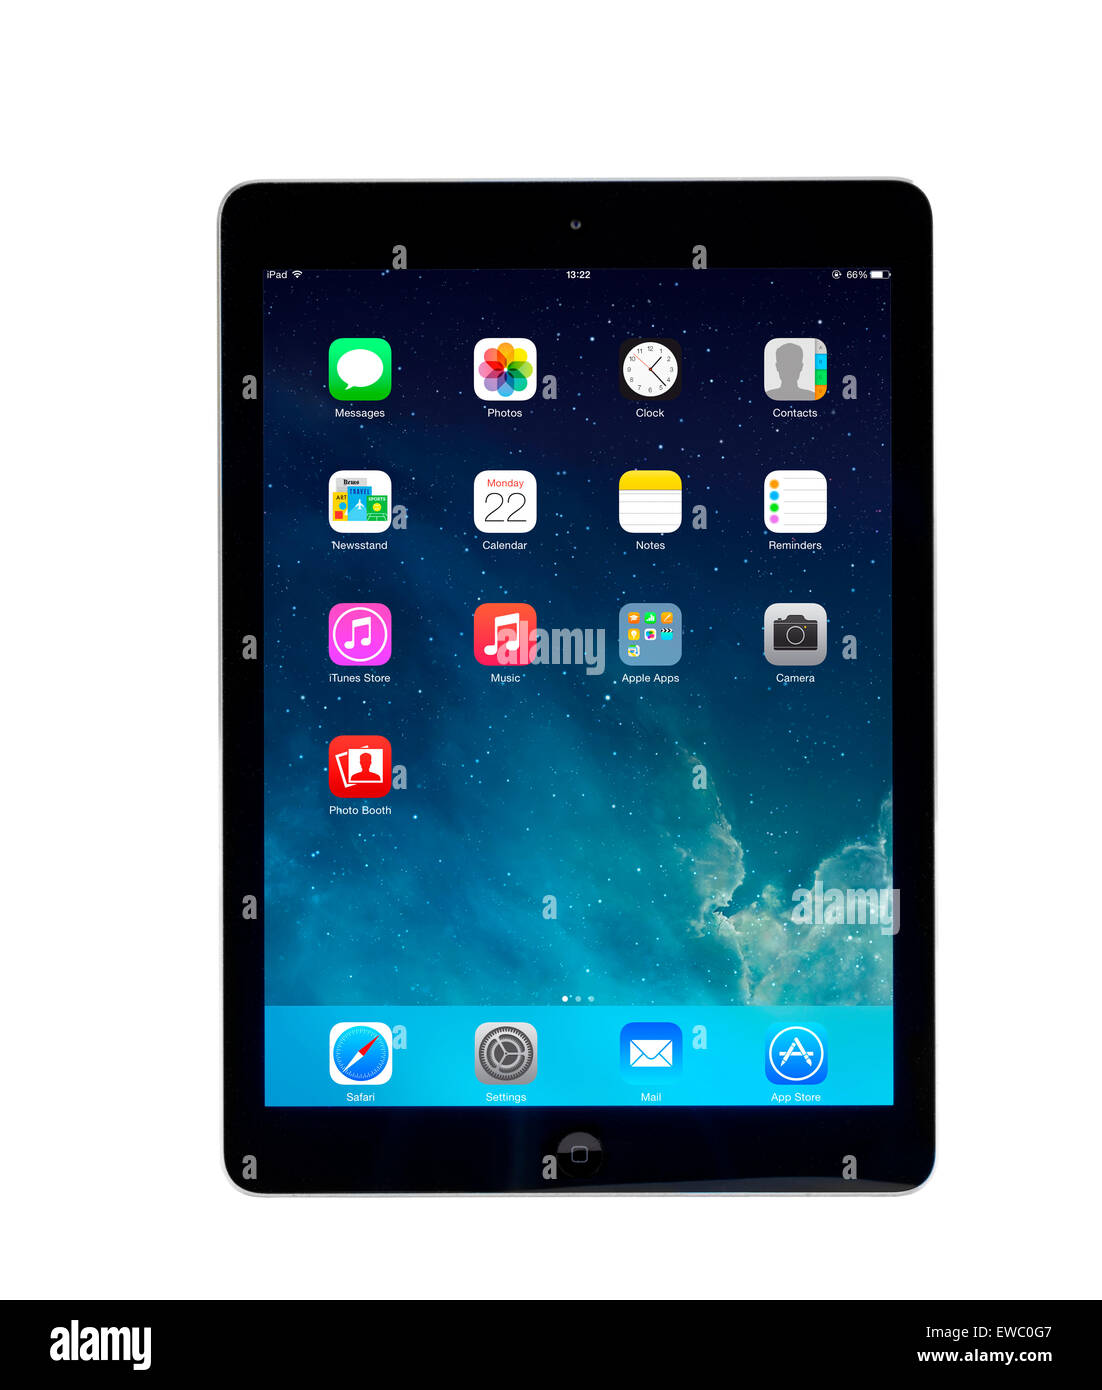 Home screen on an Apple iPad Air tablet computer - Stock Image